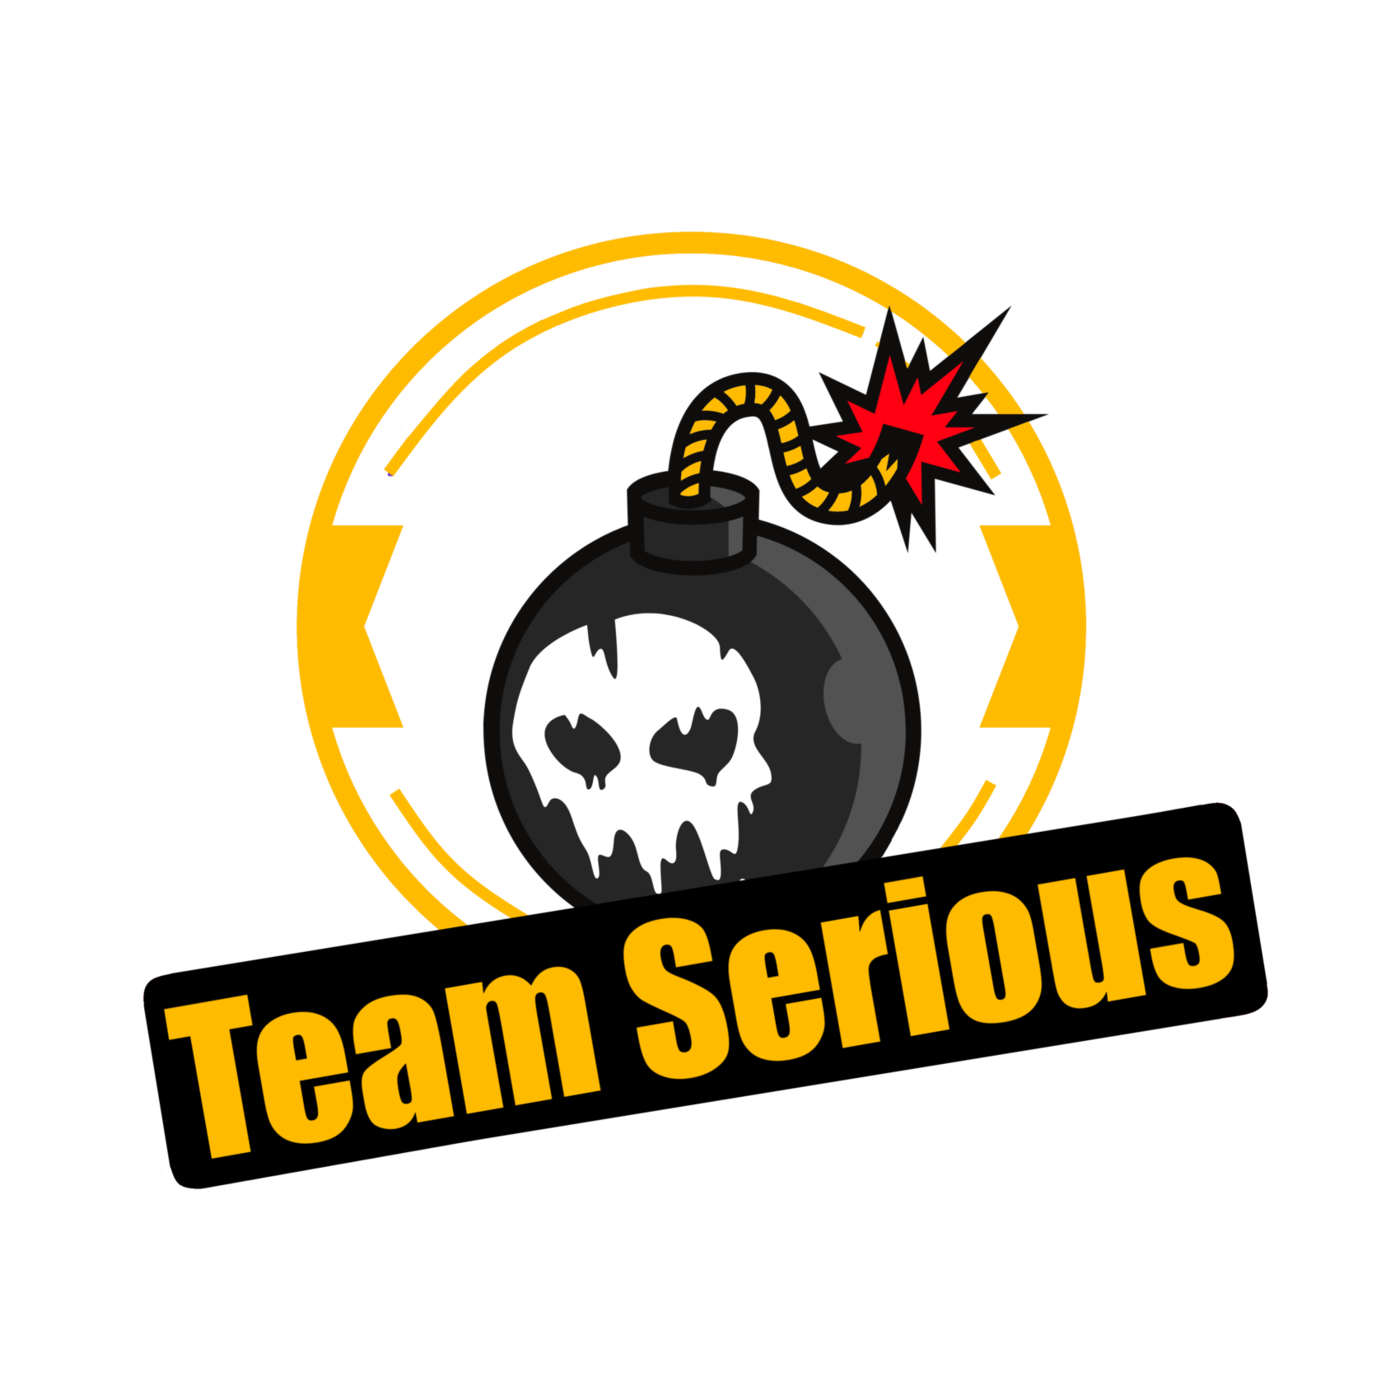 Team Serious DFW Talks - Groovylolly (Serious Ladies)